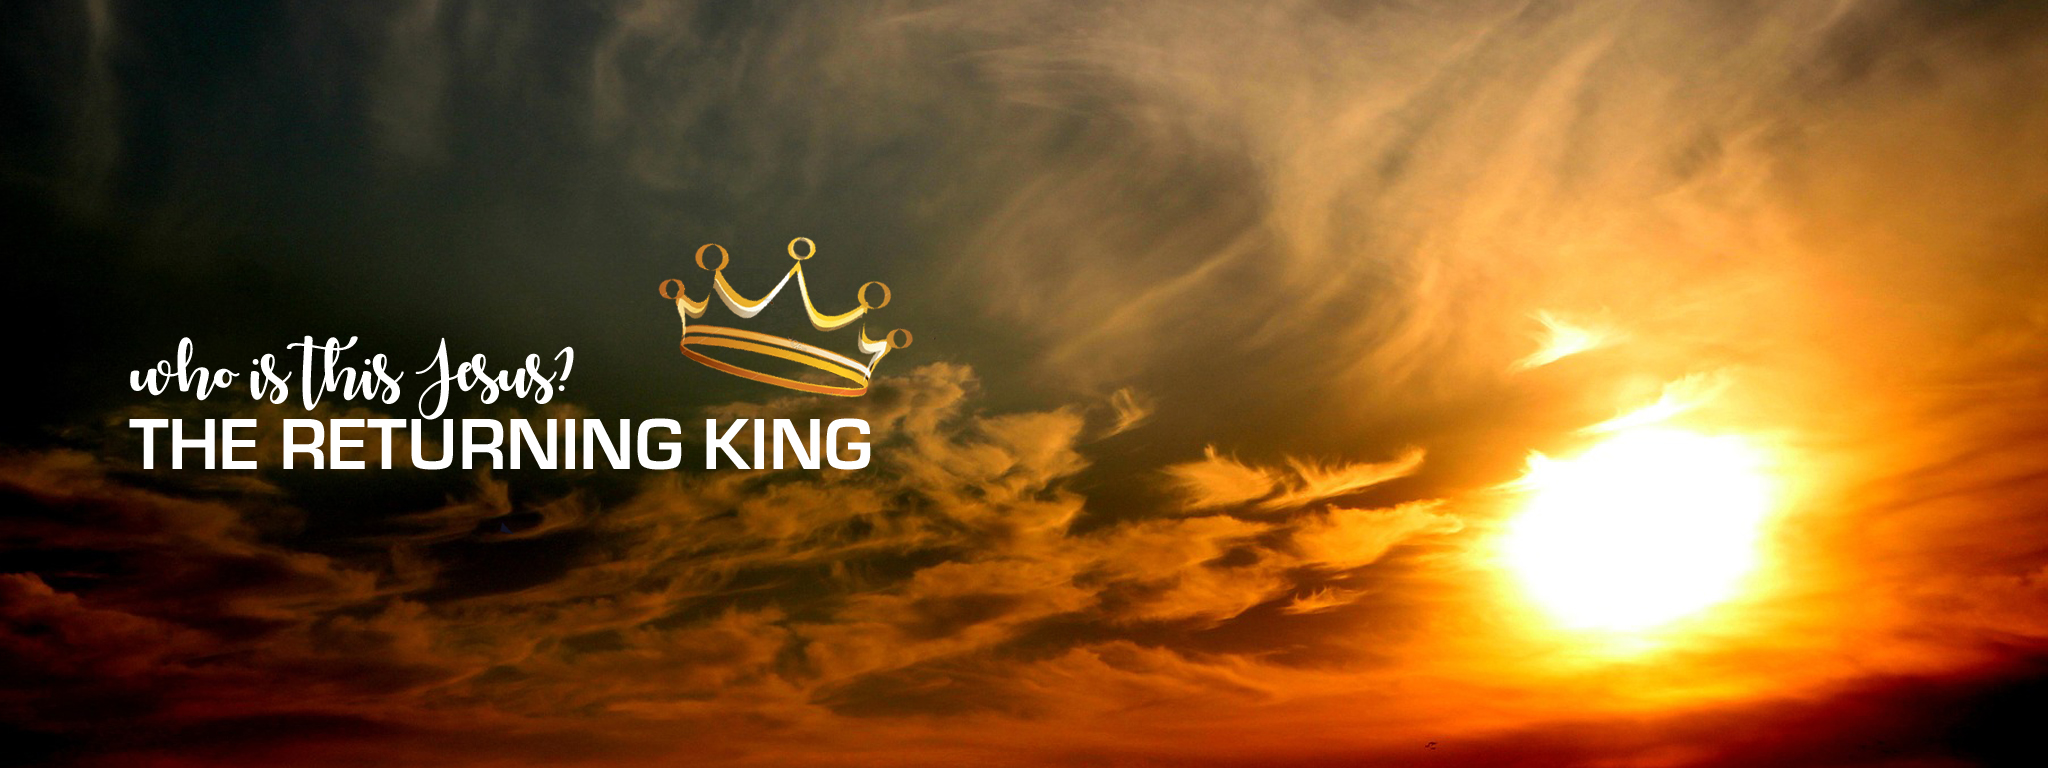 Who is this Jesus? The Returning King